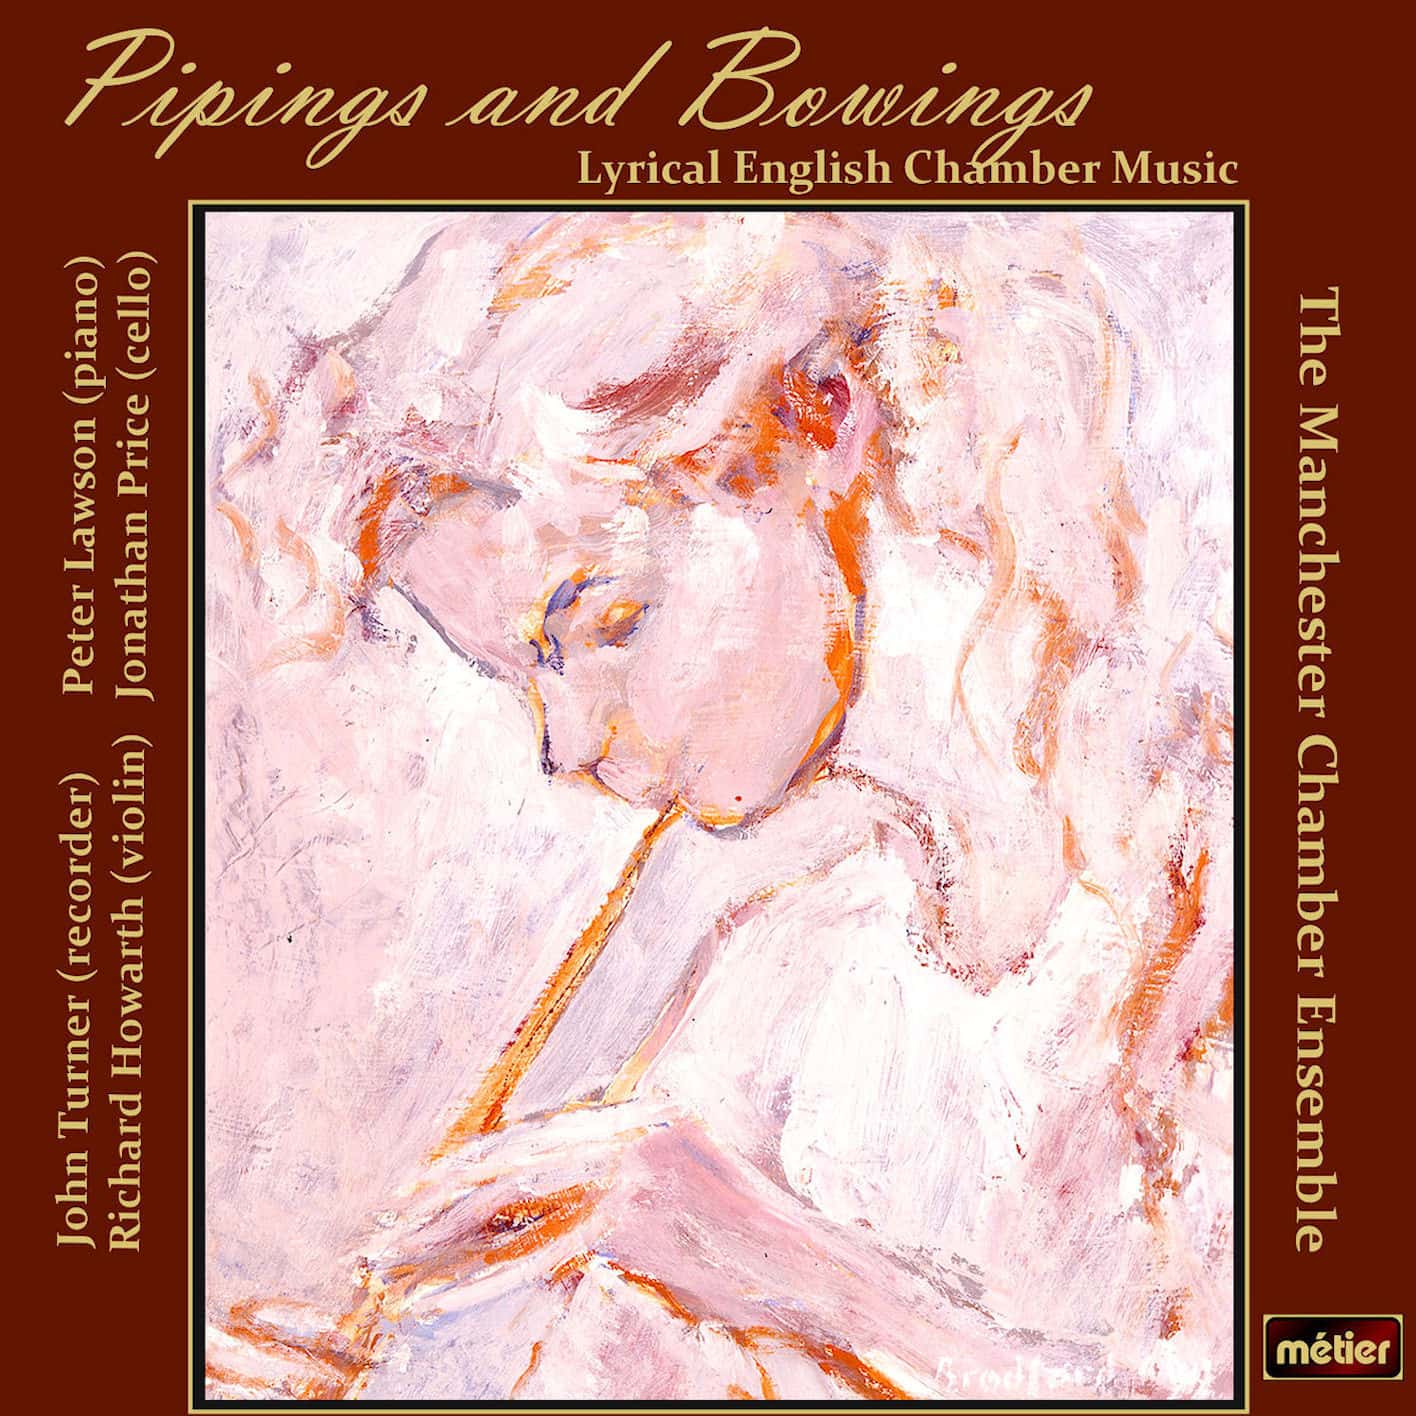 Pipings and Bowings